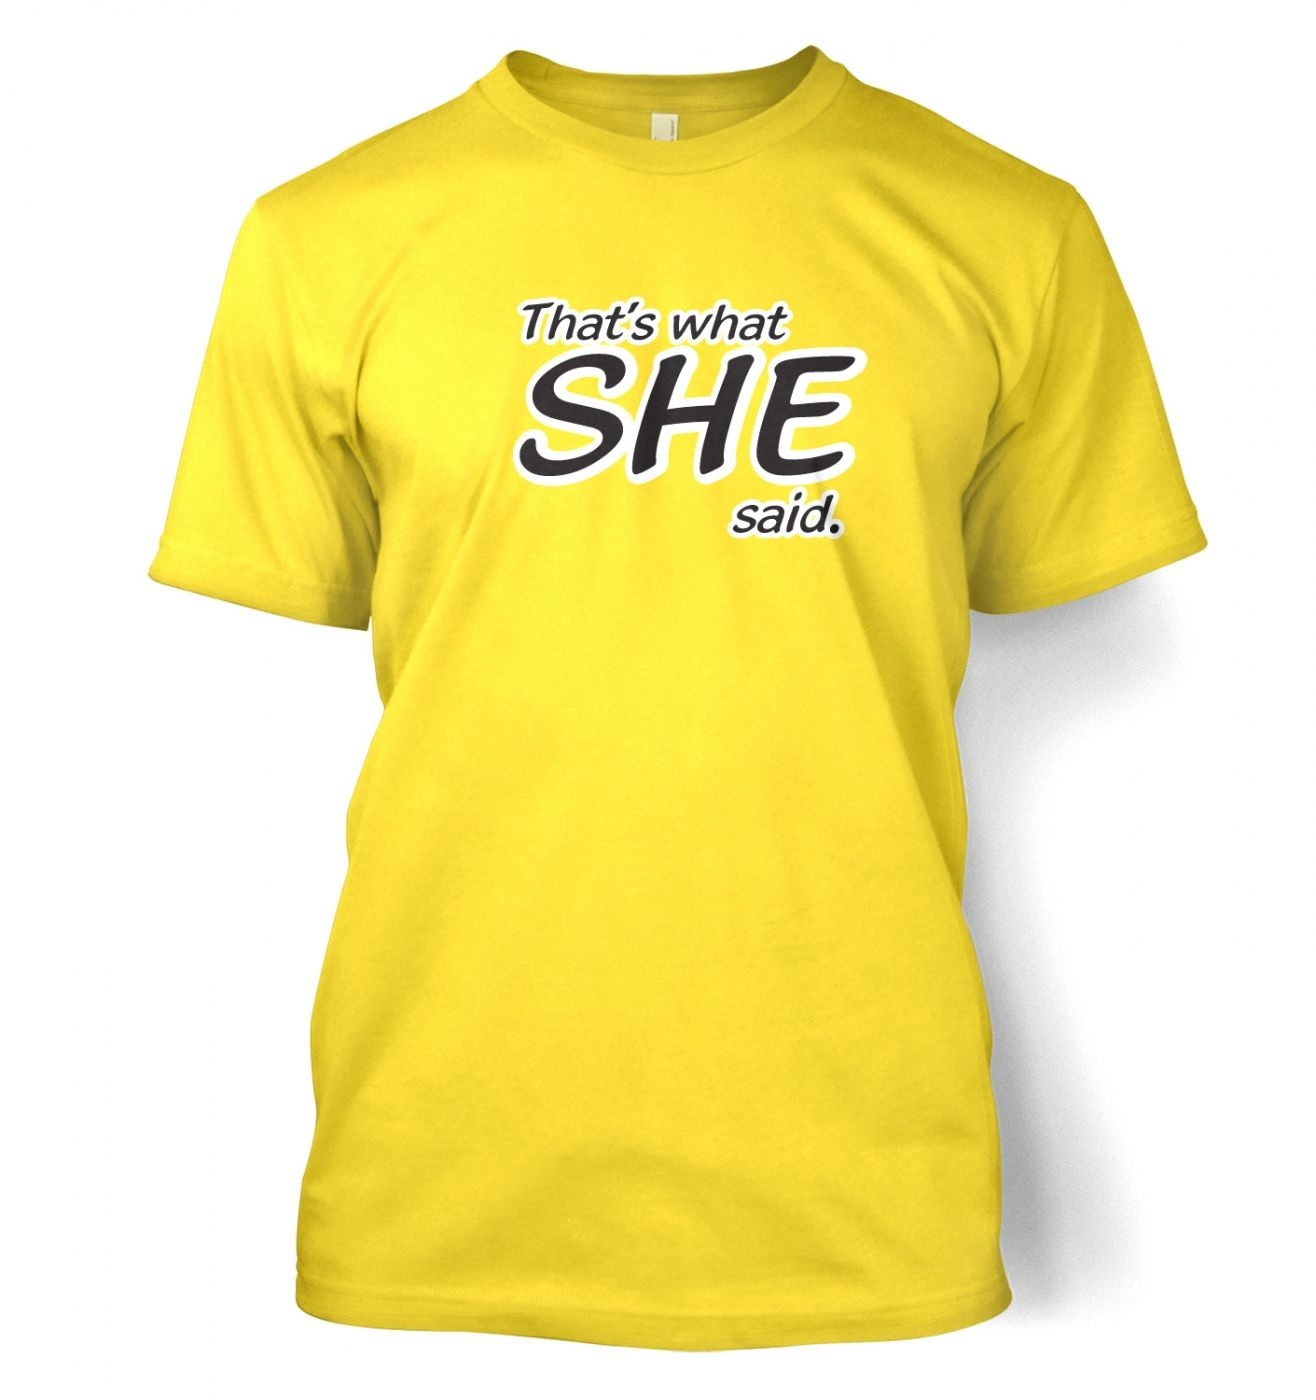 That's What SHE Said men's t-shirt